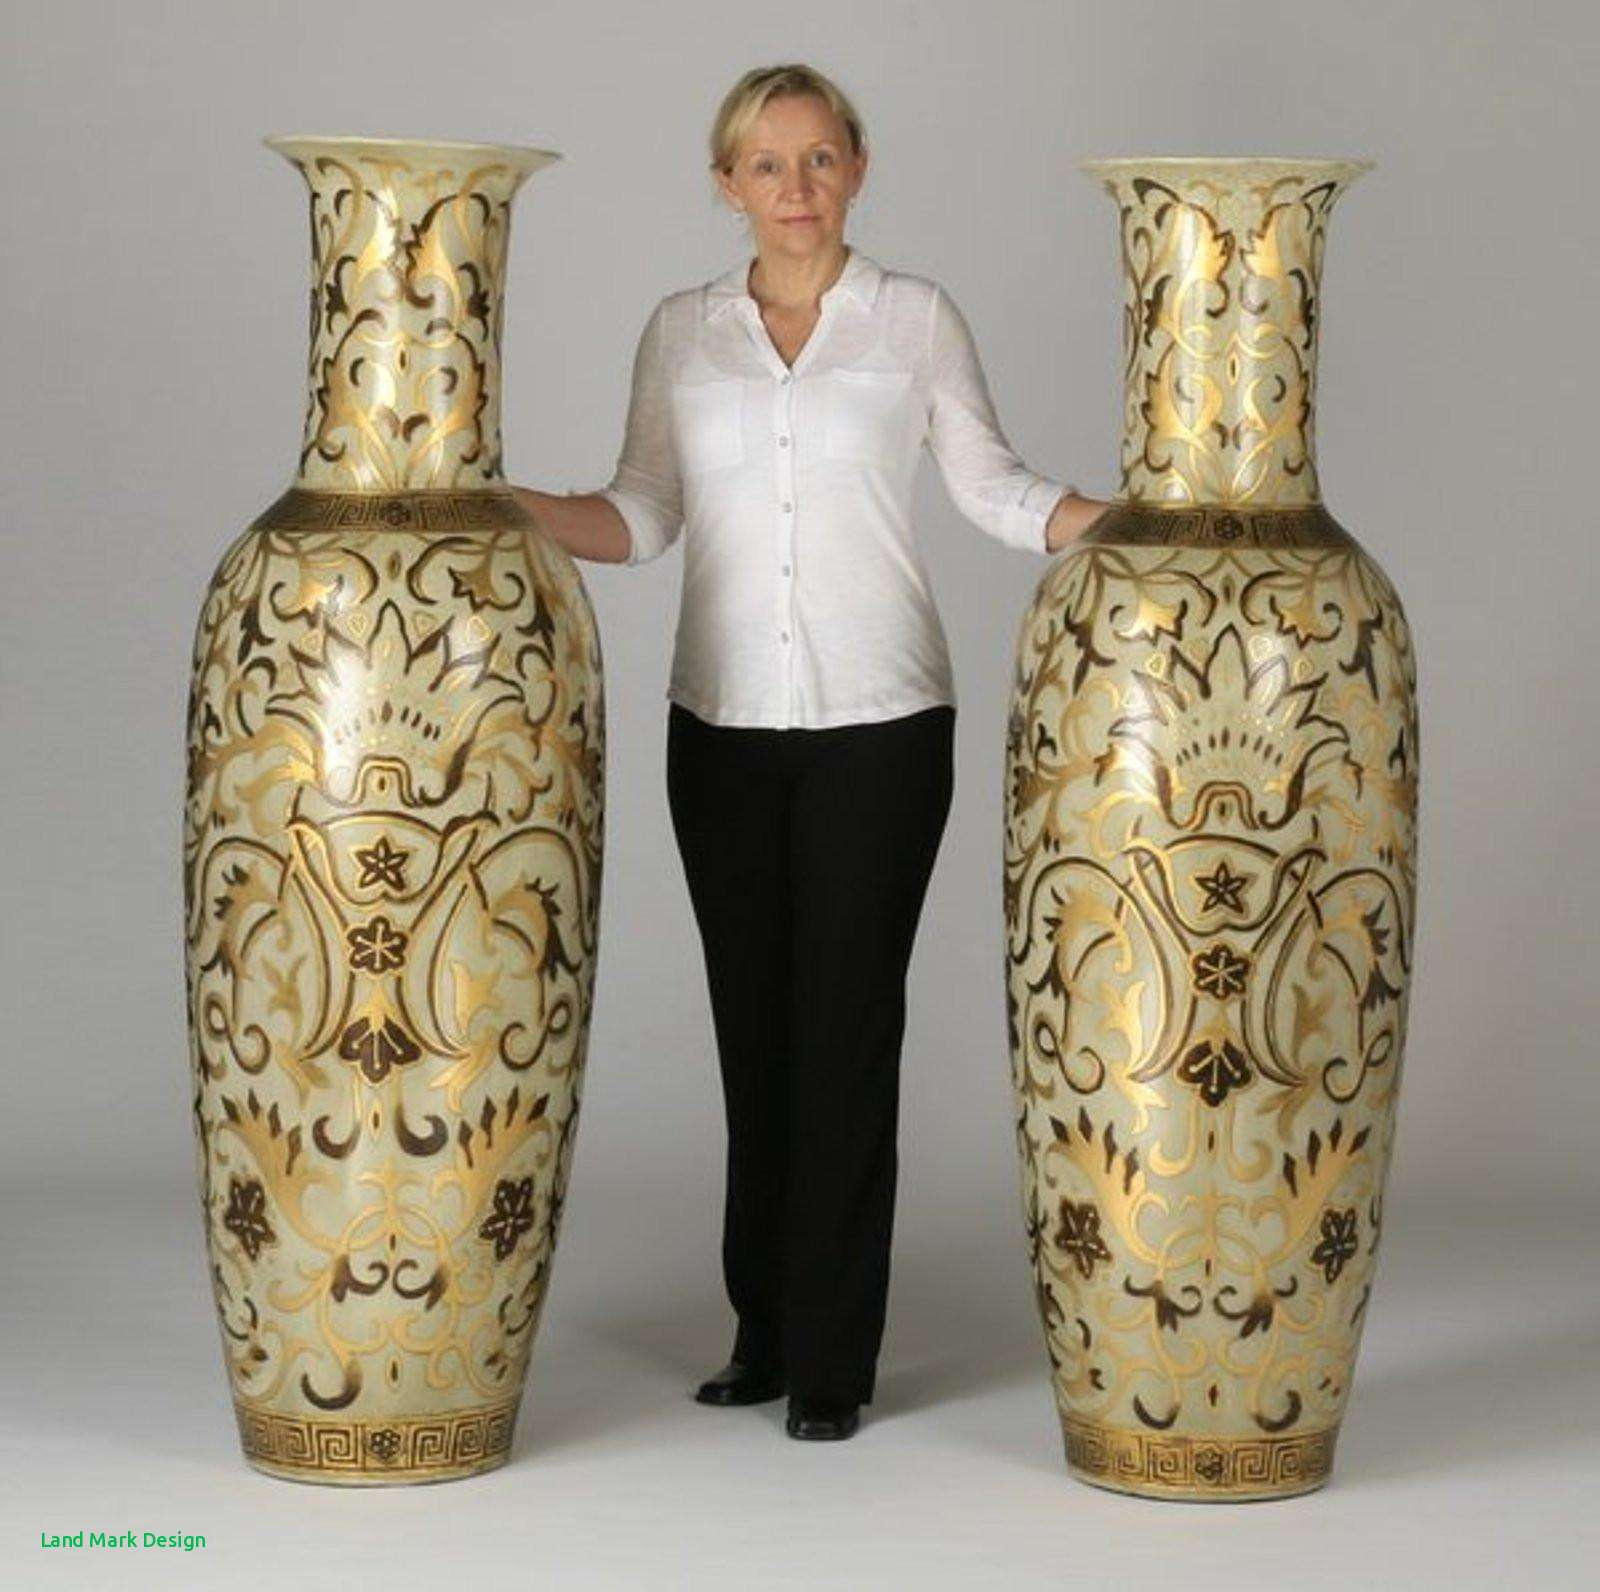 26 Great Large White Ceramic Vase 2021 free download large white ceramic vase of giant vases design home design inside full size of living room white floor vase luxury h vases oversized floor i 0d large